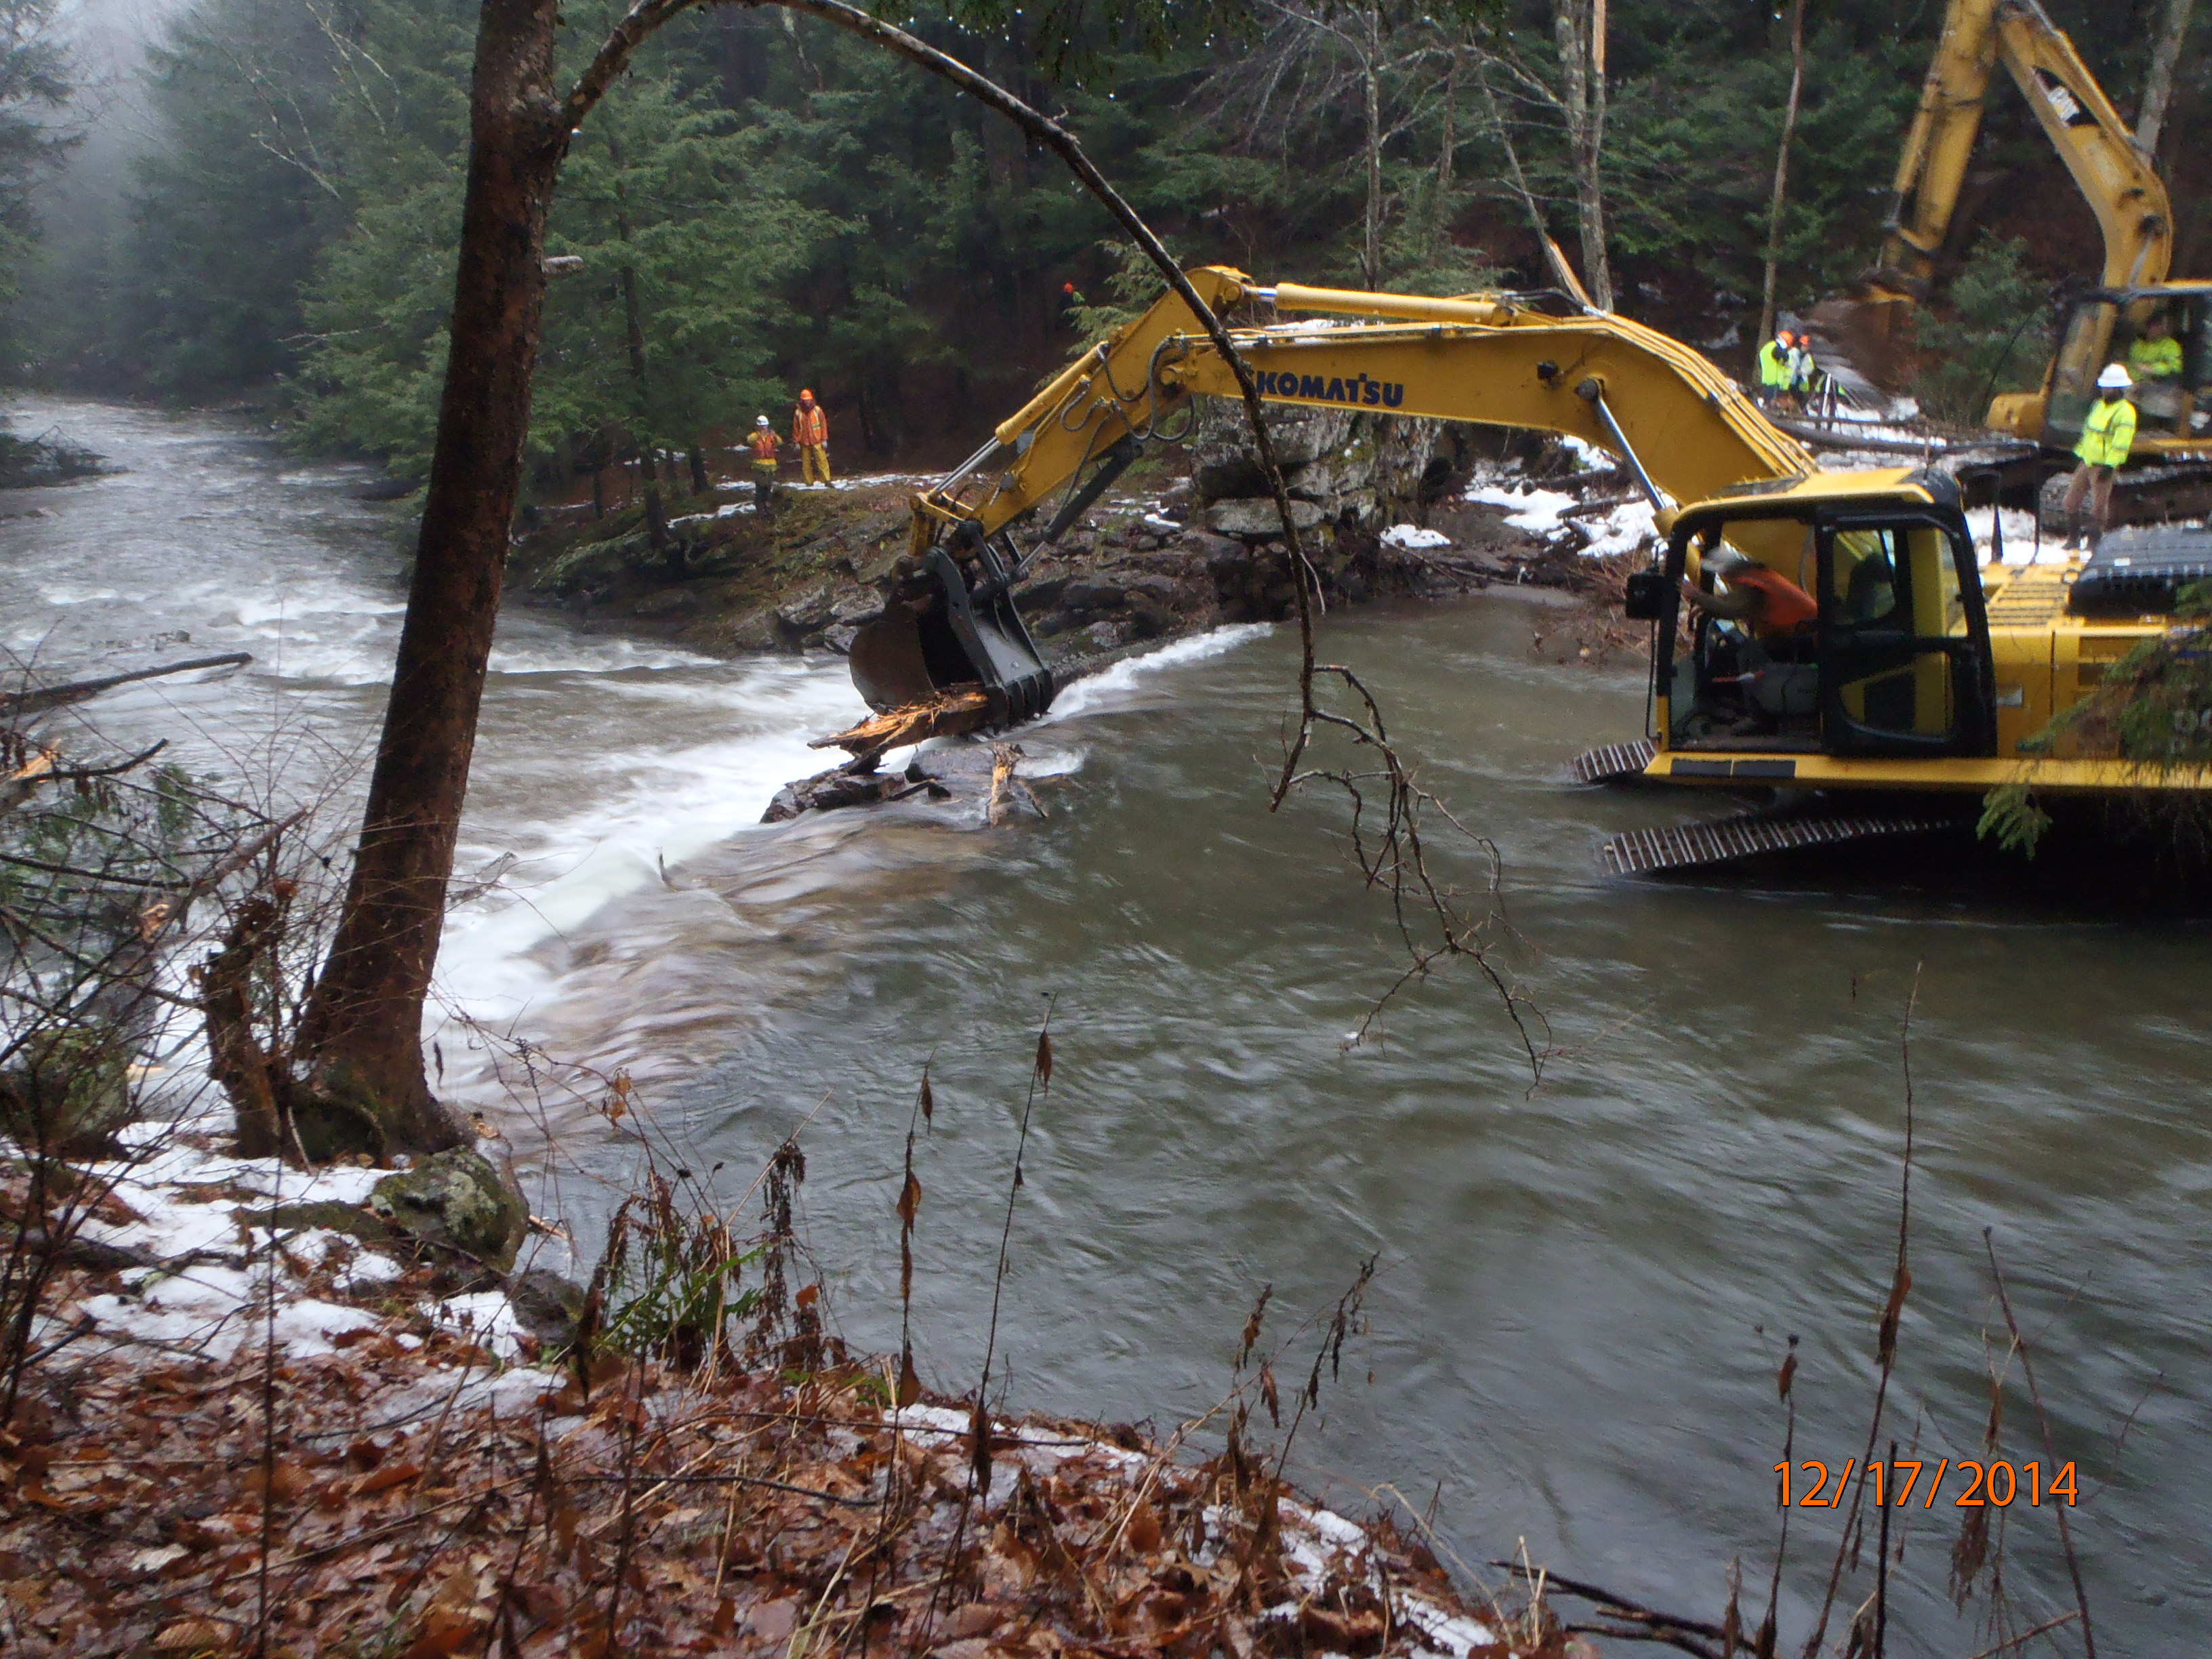 File:Spillway removal at the Fall River Dam (6).jpg